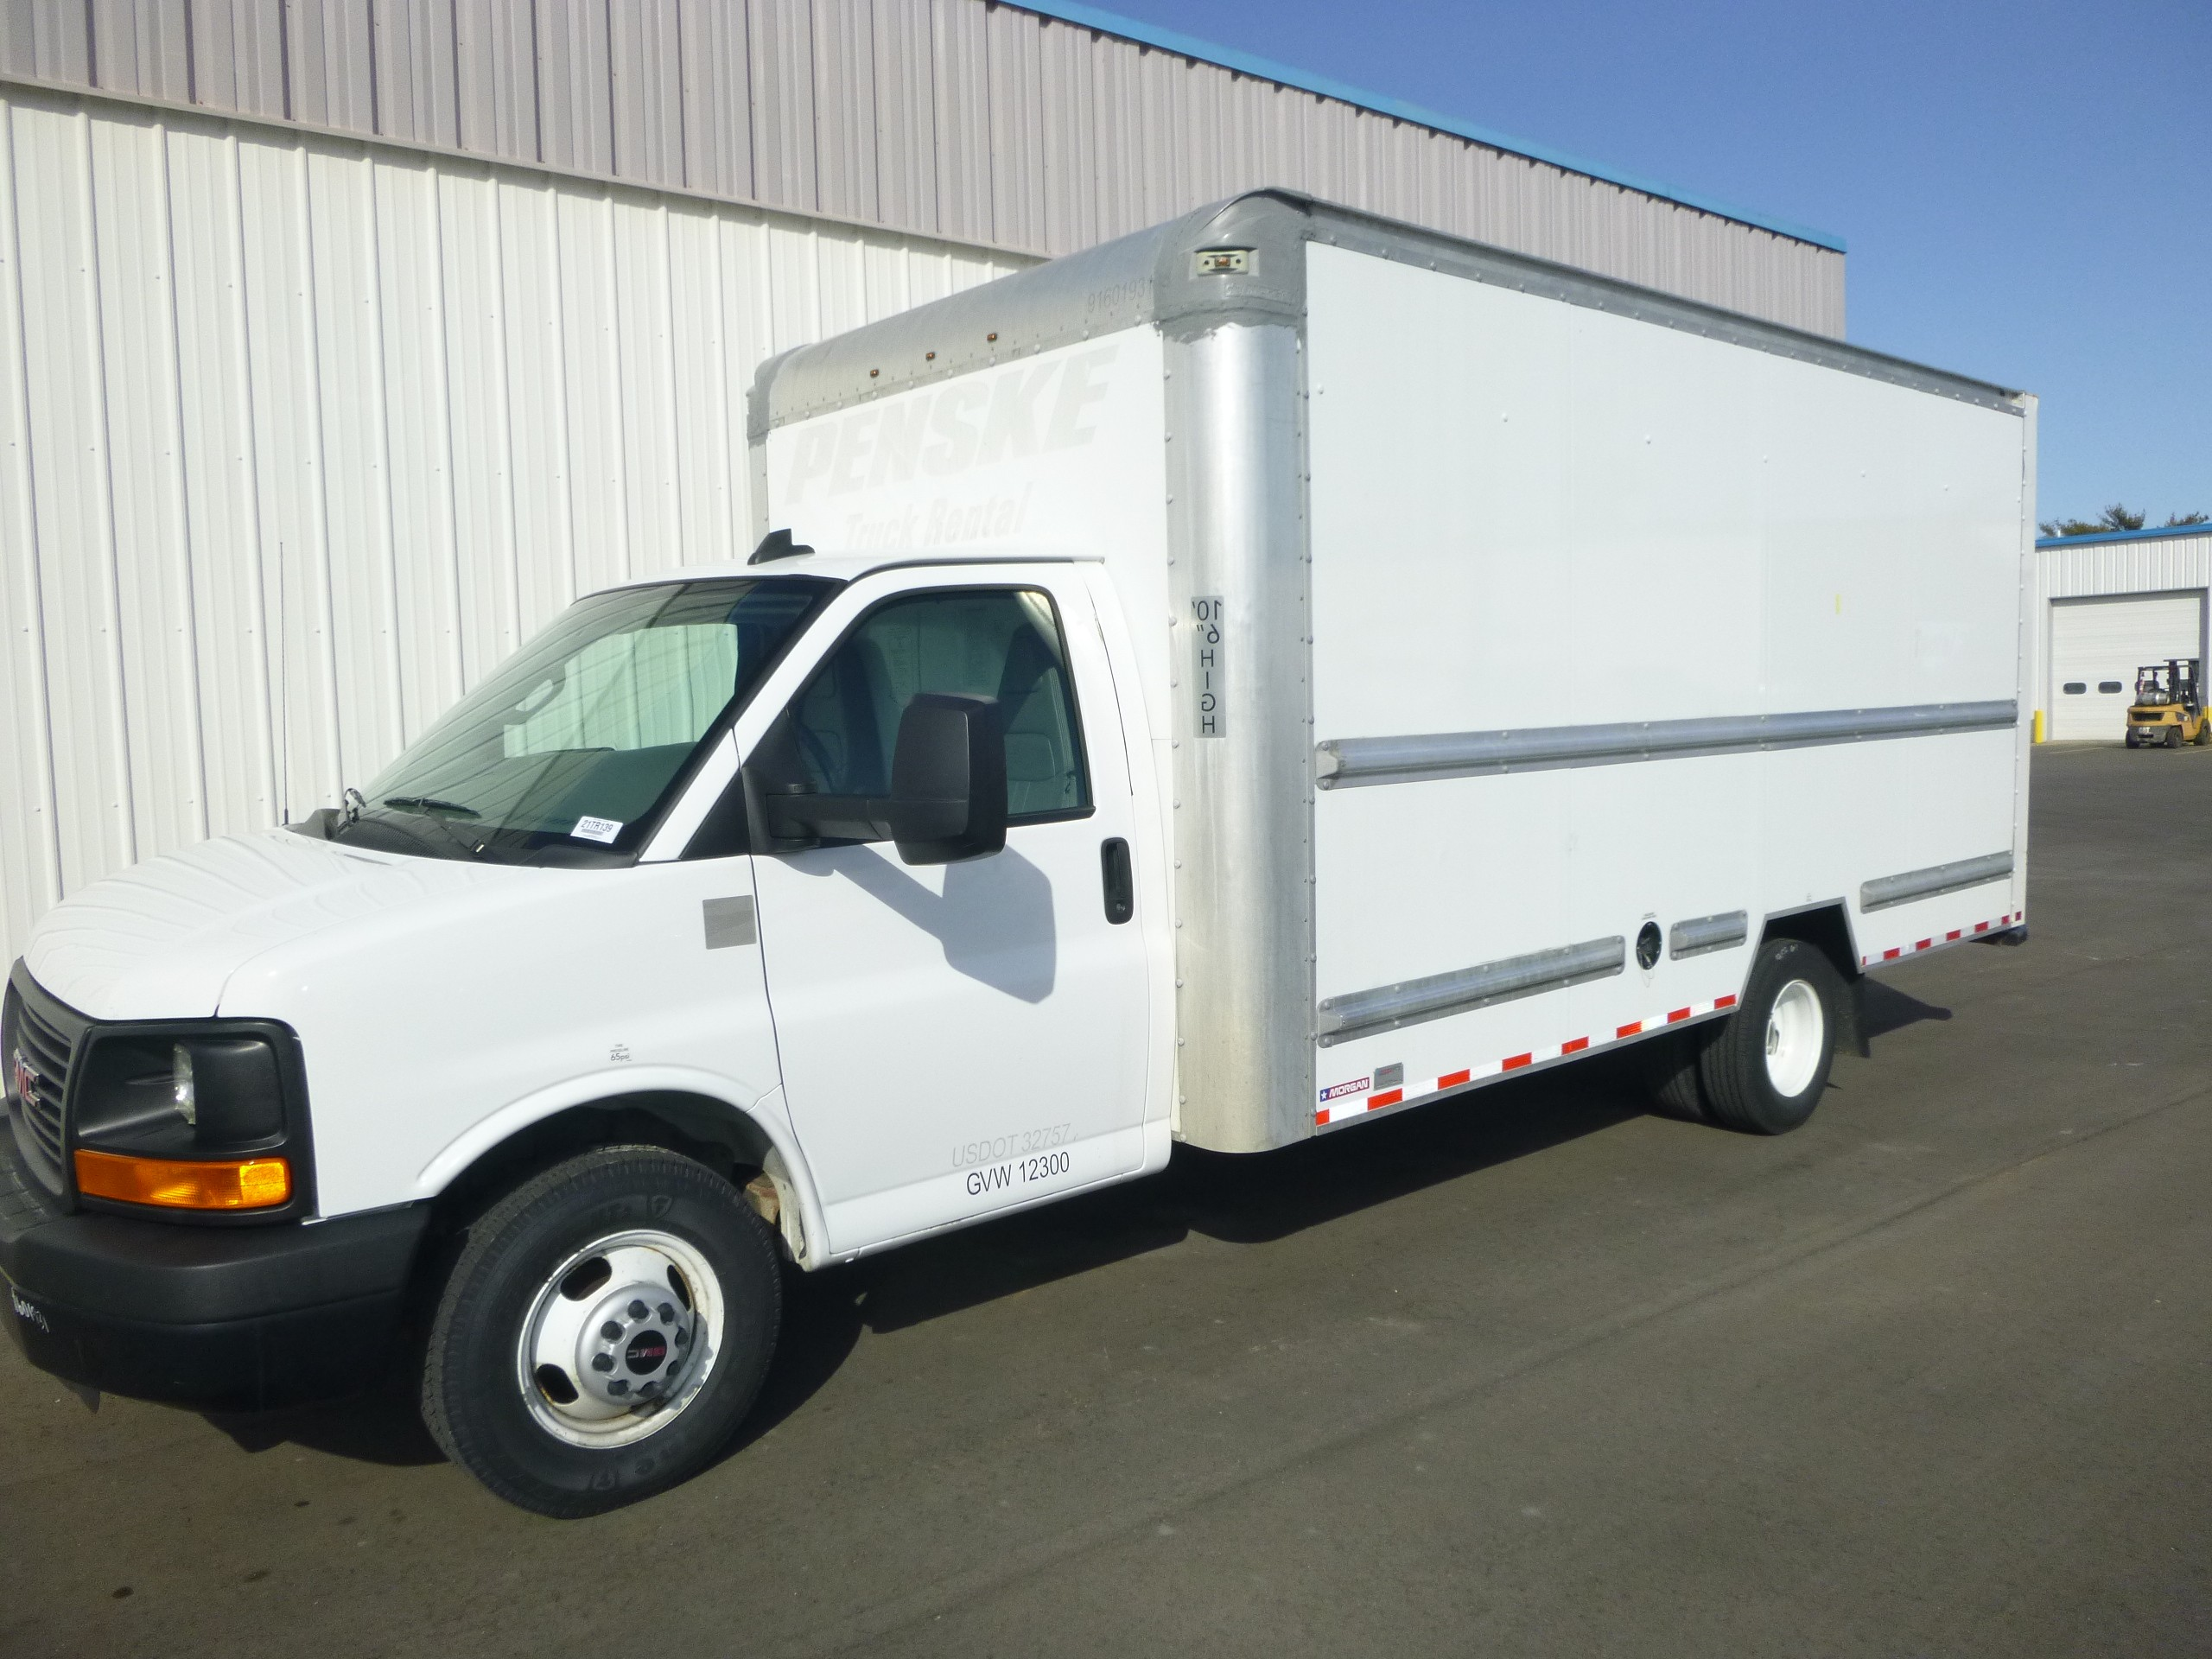 Used, 2016, GMC, Savana 3500 16' Cube van, Van Trucks